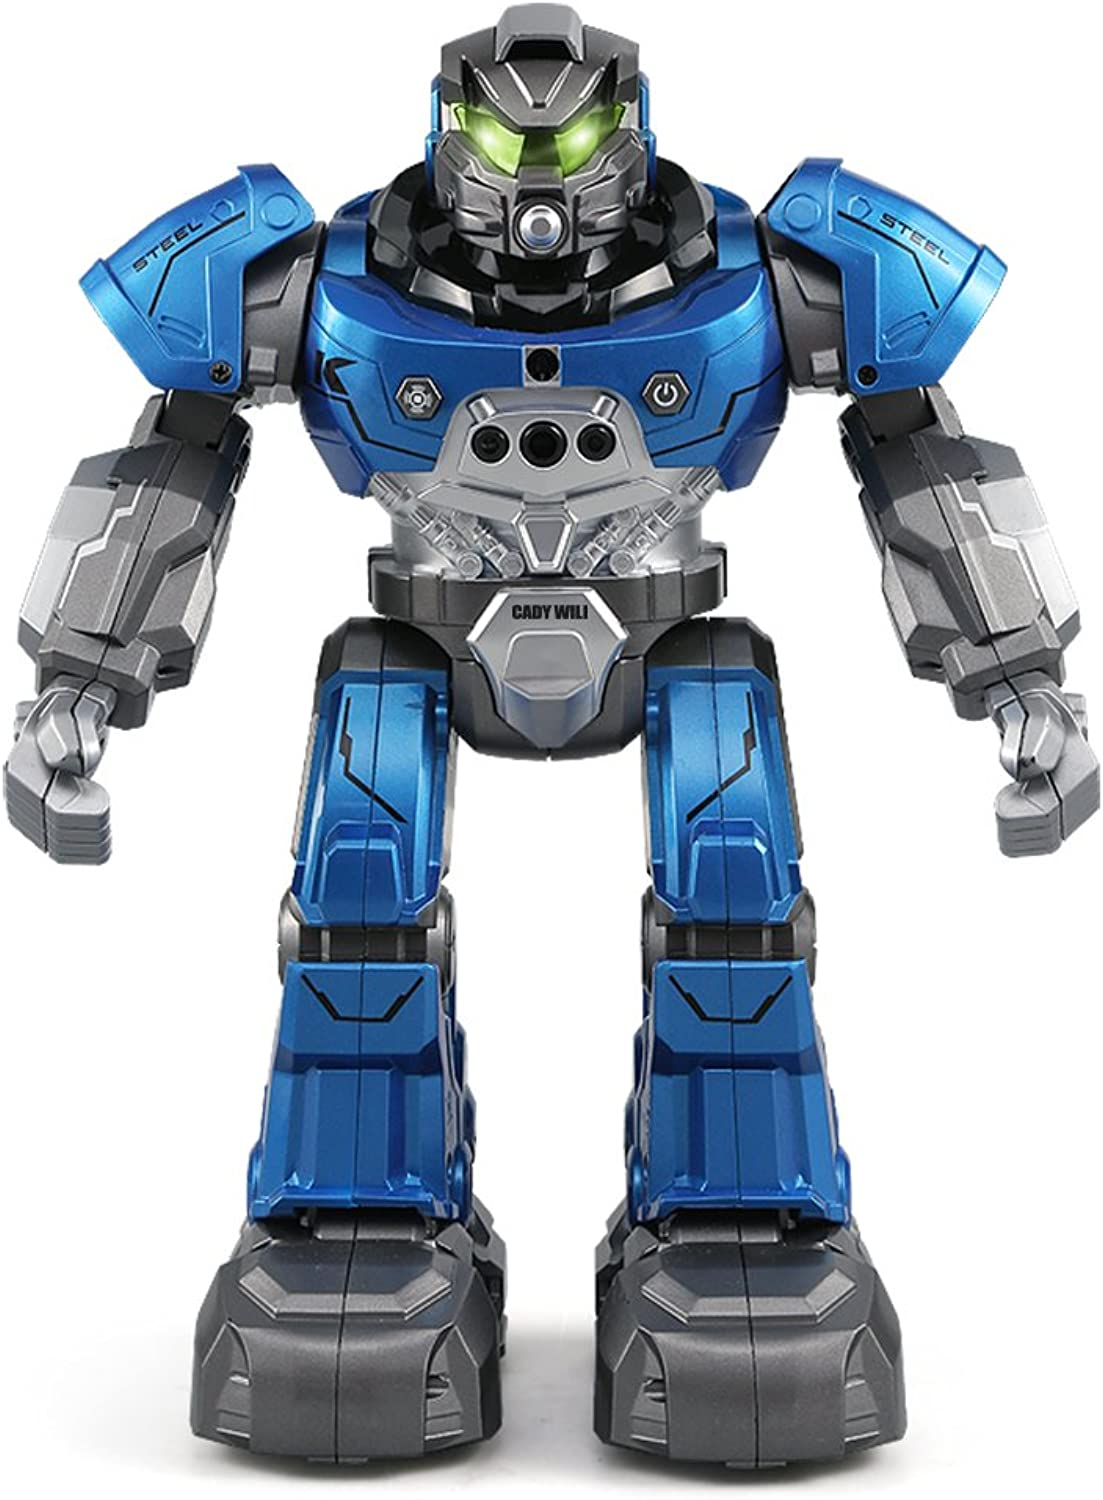 OMZBM Smart Robot Toys Gesture Remote Watch Control Humanoid Robot Multifunction Early Education RC Interactive Game